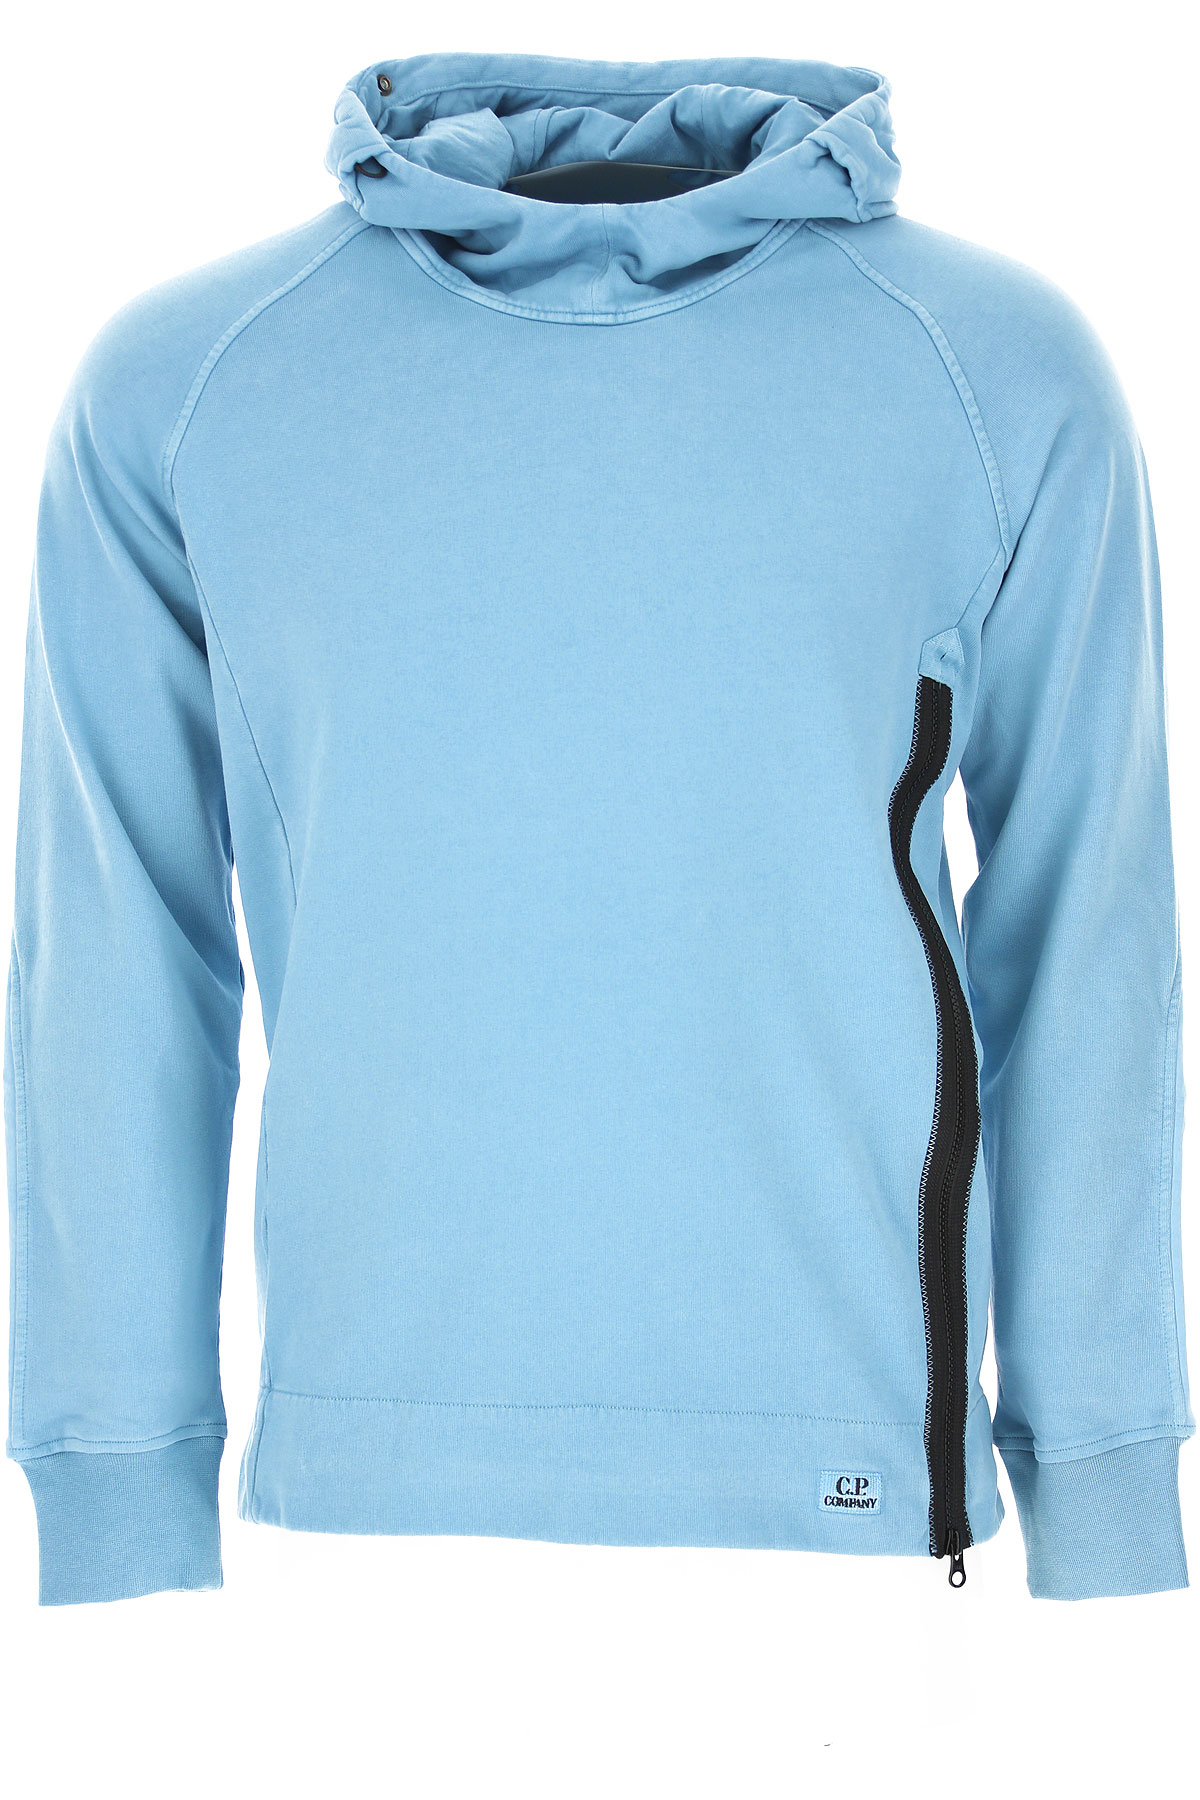 C.P. Company Sweatshirt for Men On Sale, Light Blue, Cotton, 2019, L M S